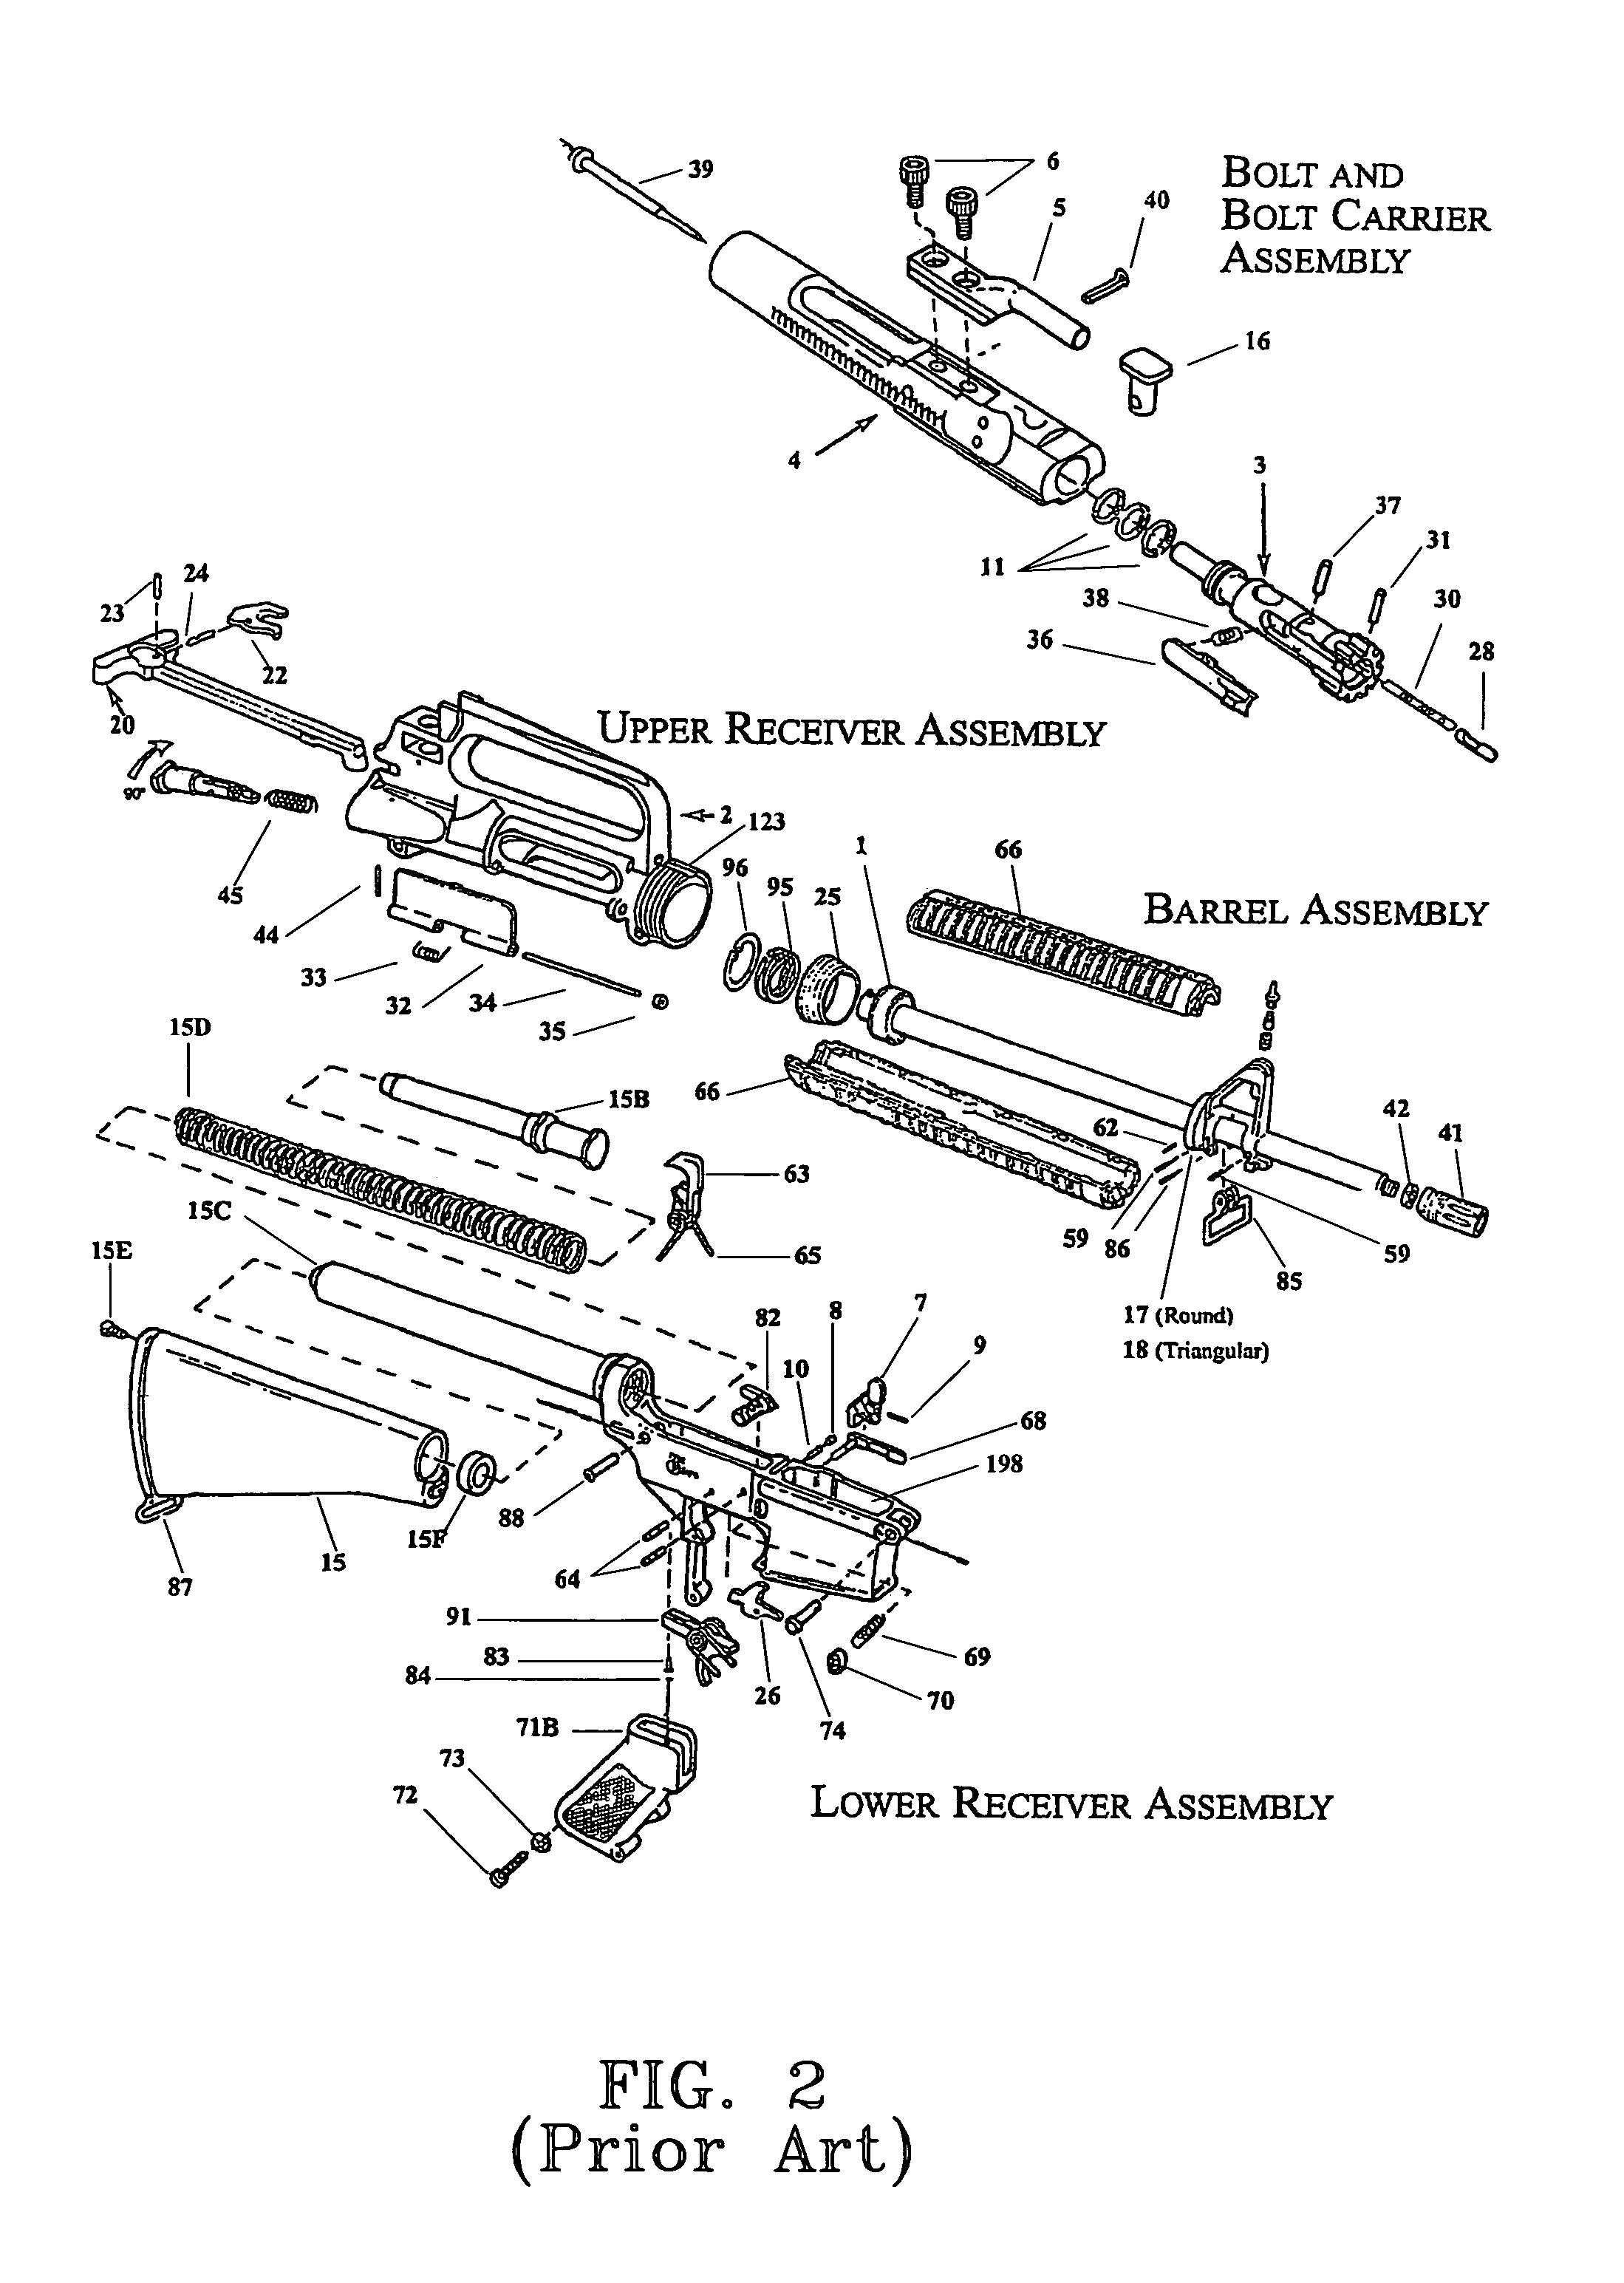 Ar 15 Upper Receiver Exploded View Diagram